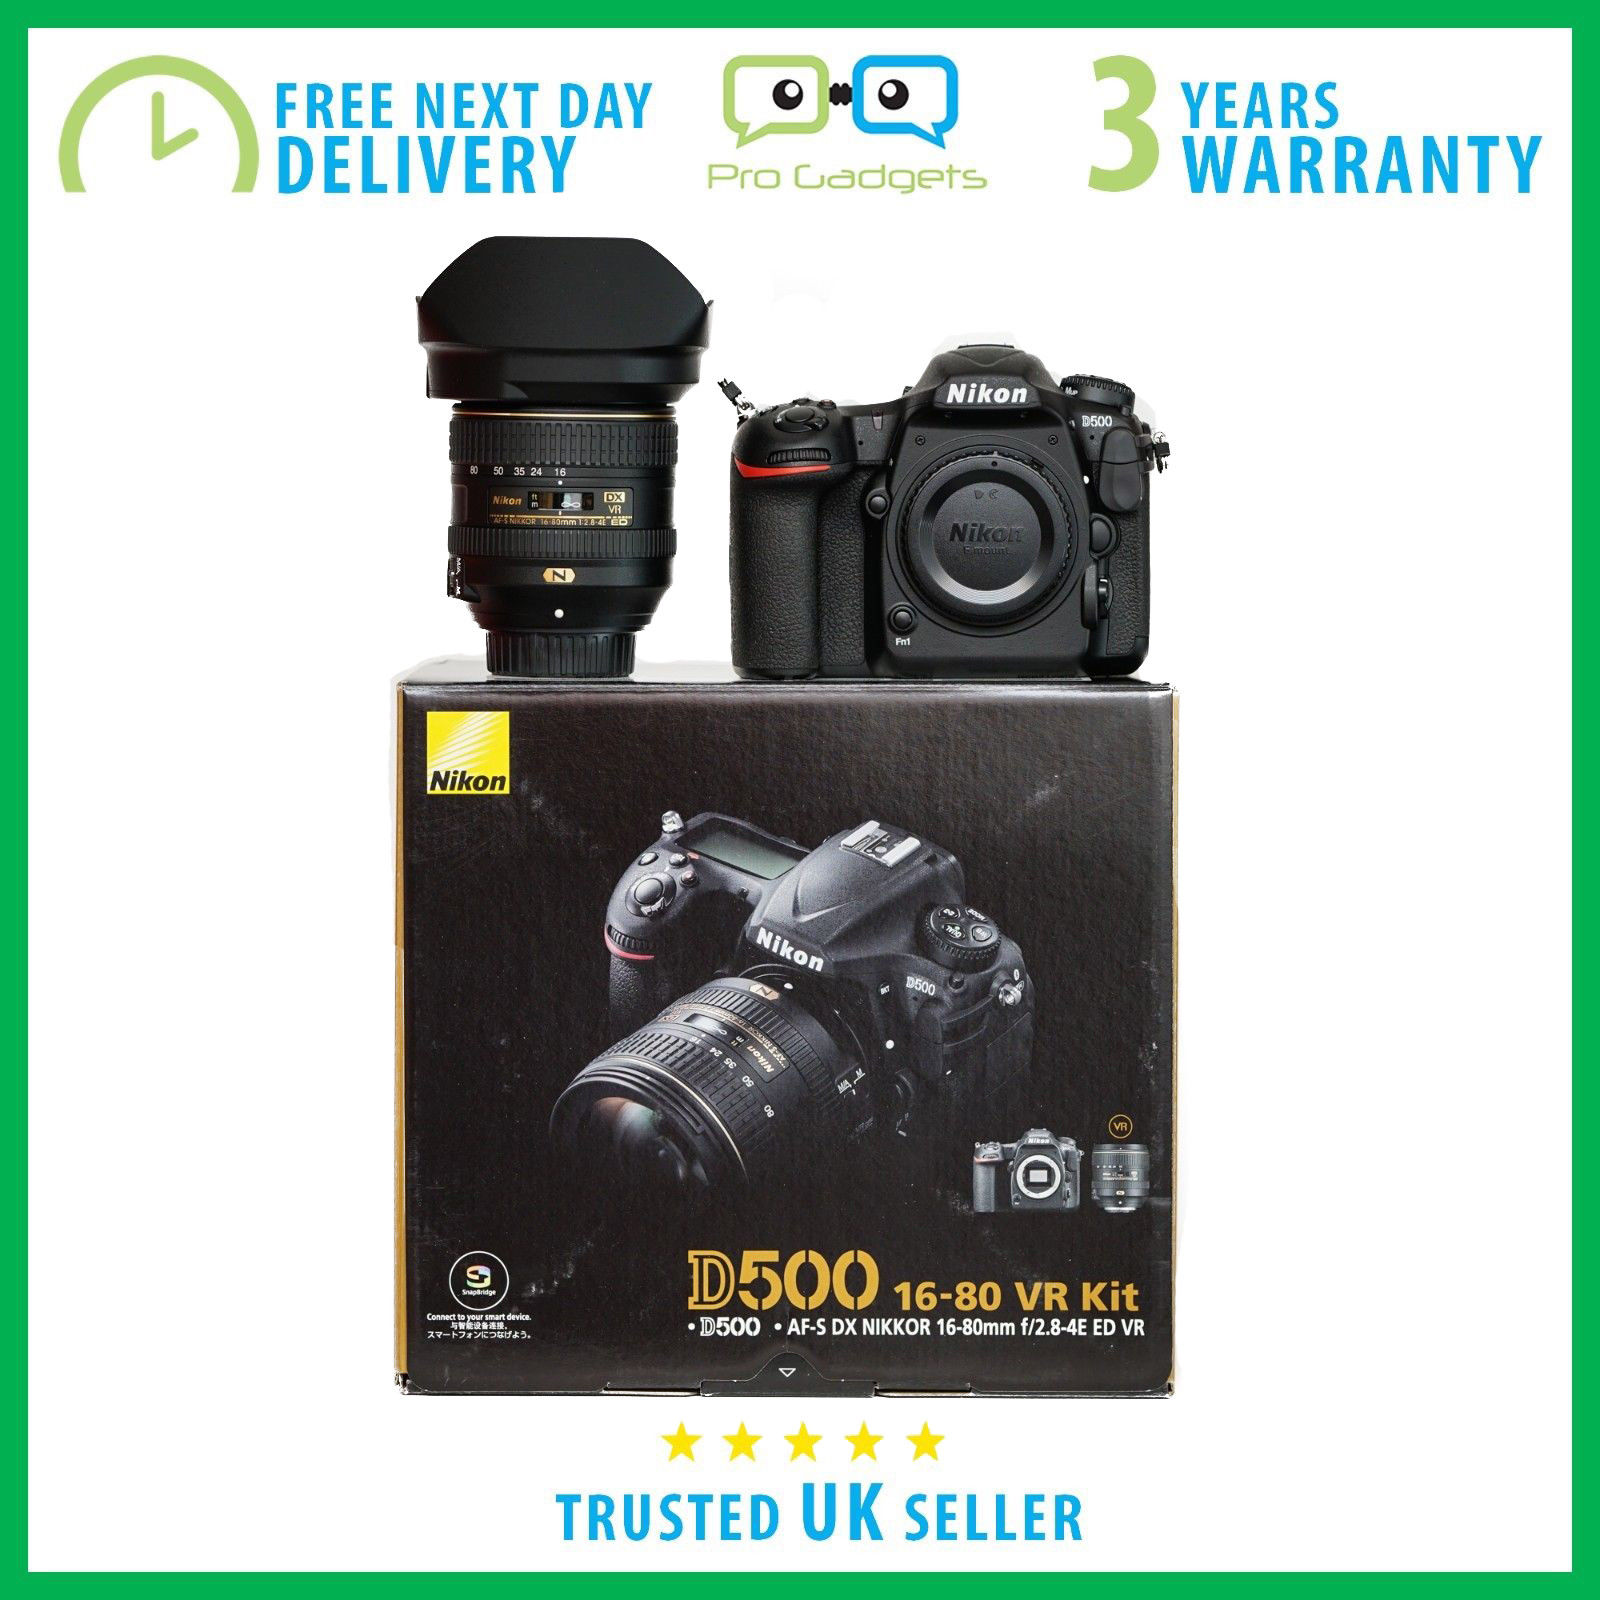 New Nikon D500 20.9MP DX DSLR Camera With 16-80mm VR Lens - 3 Year Warranty